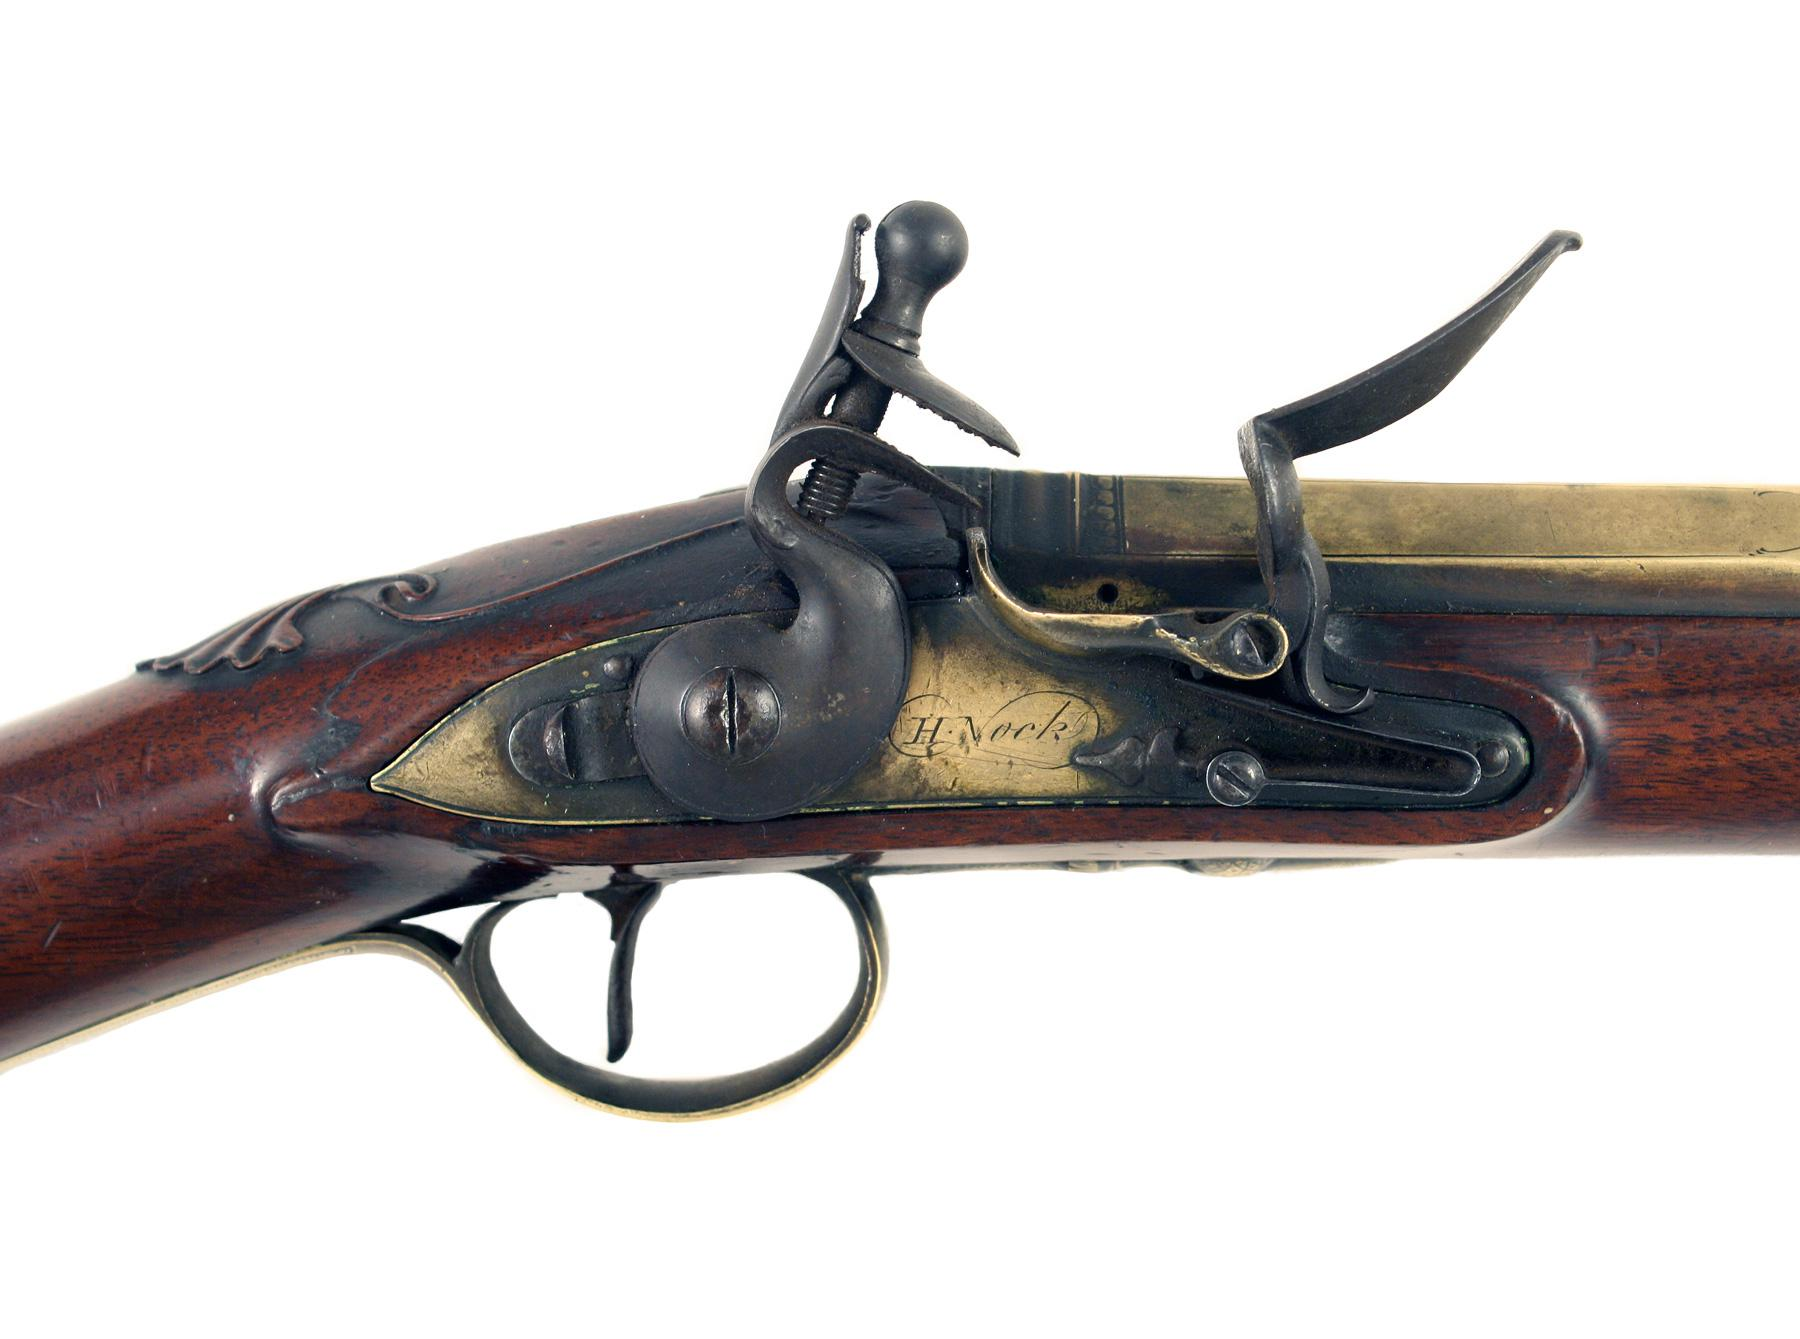 A Superb Flintlock Blunderbuss by H. Nock